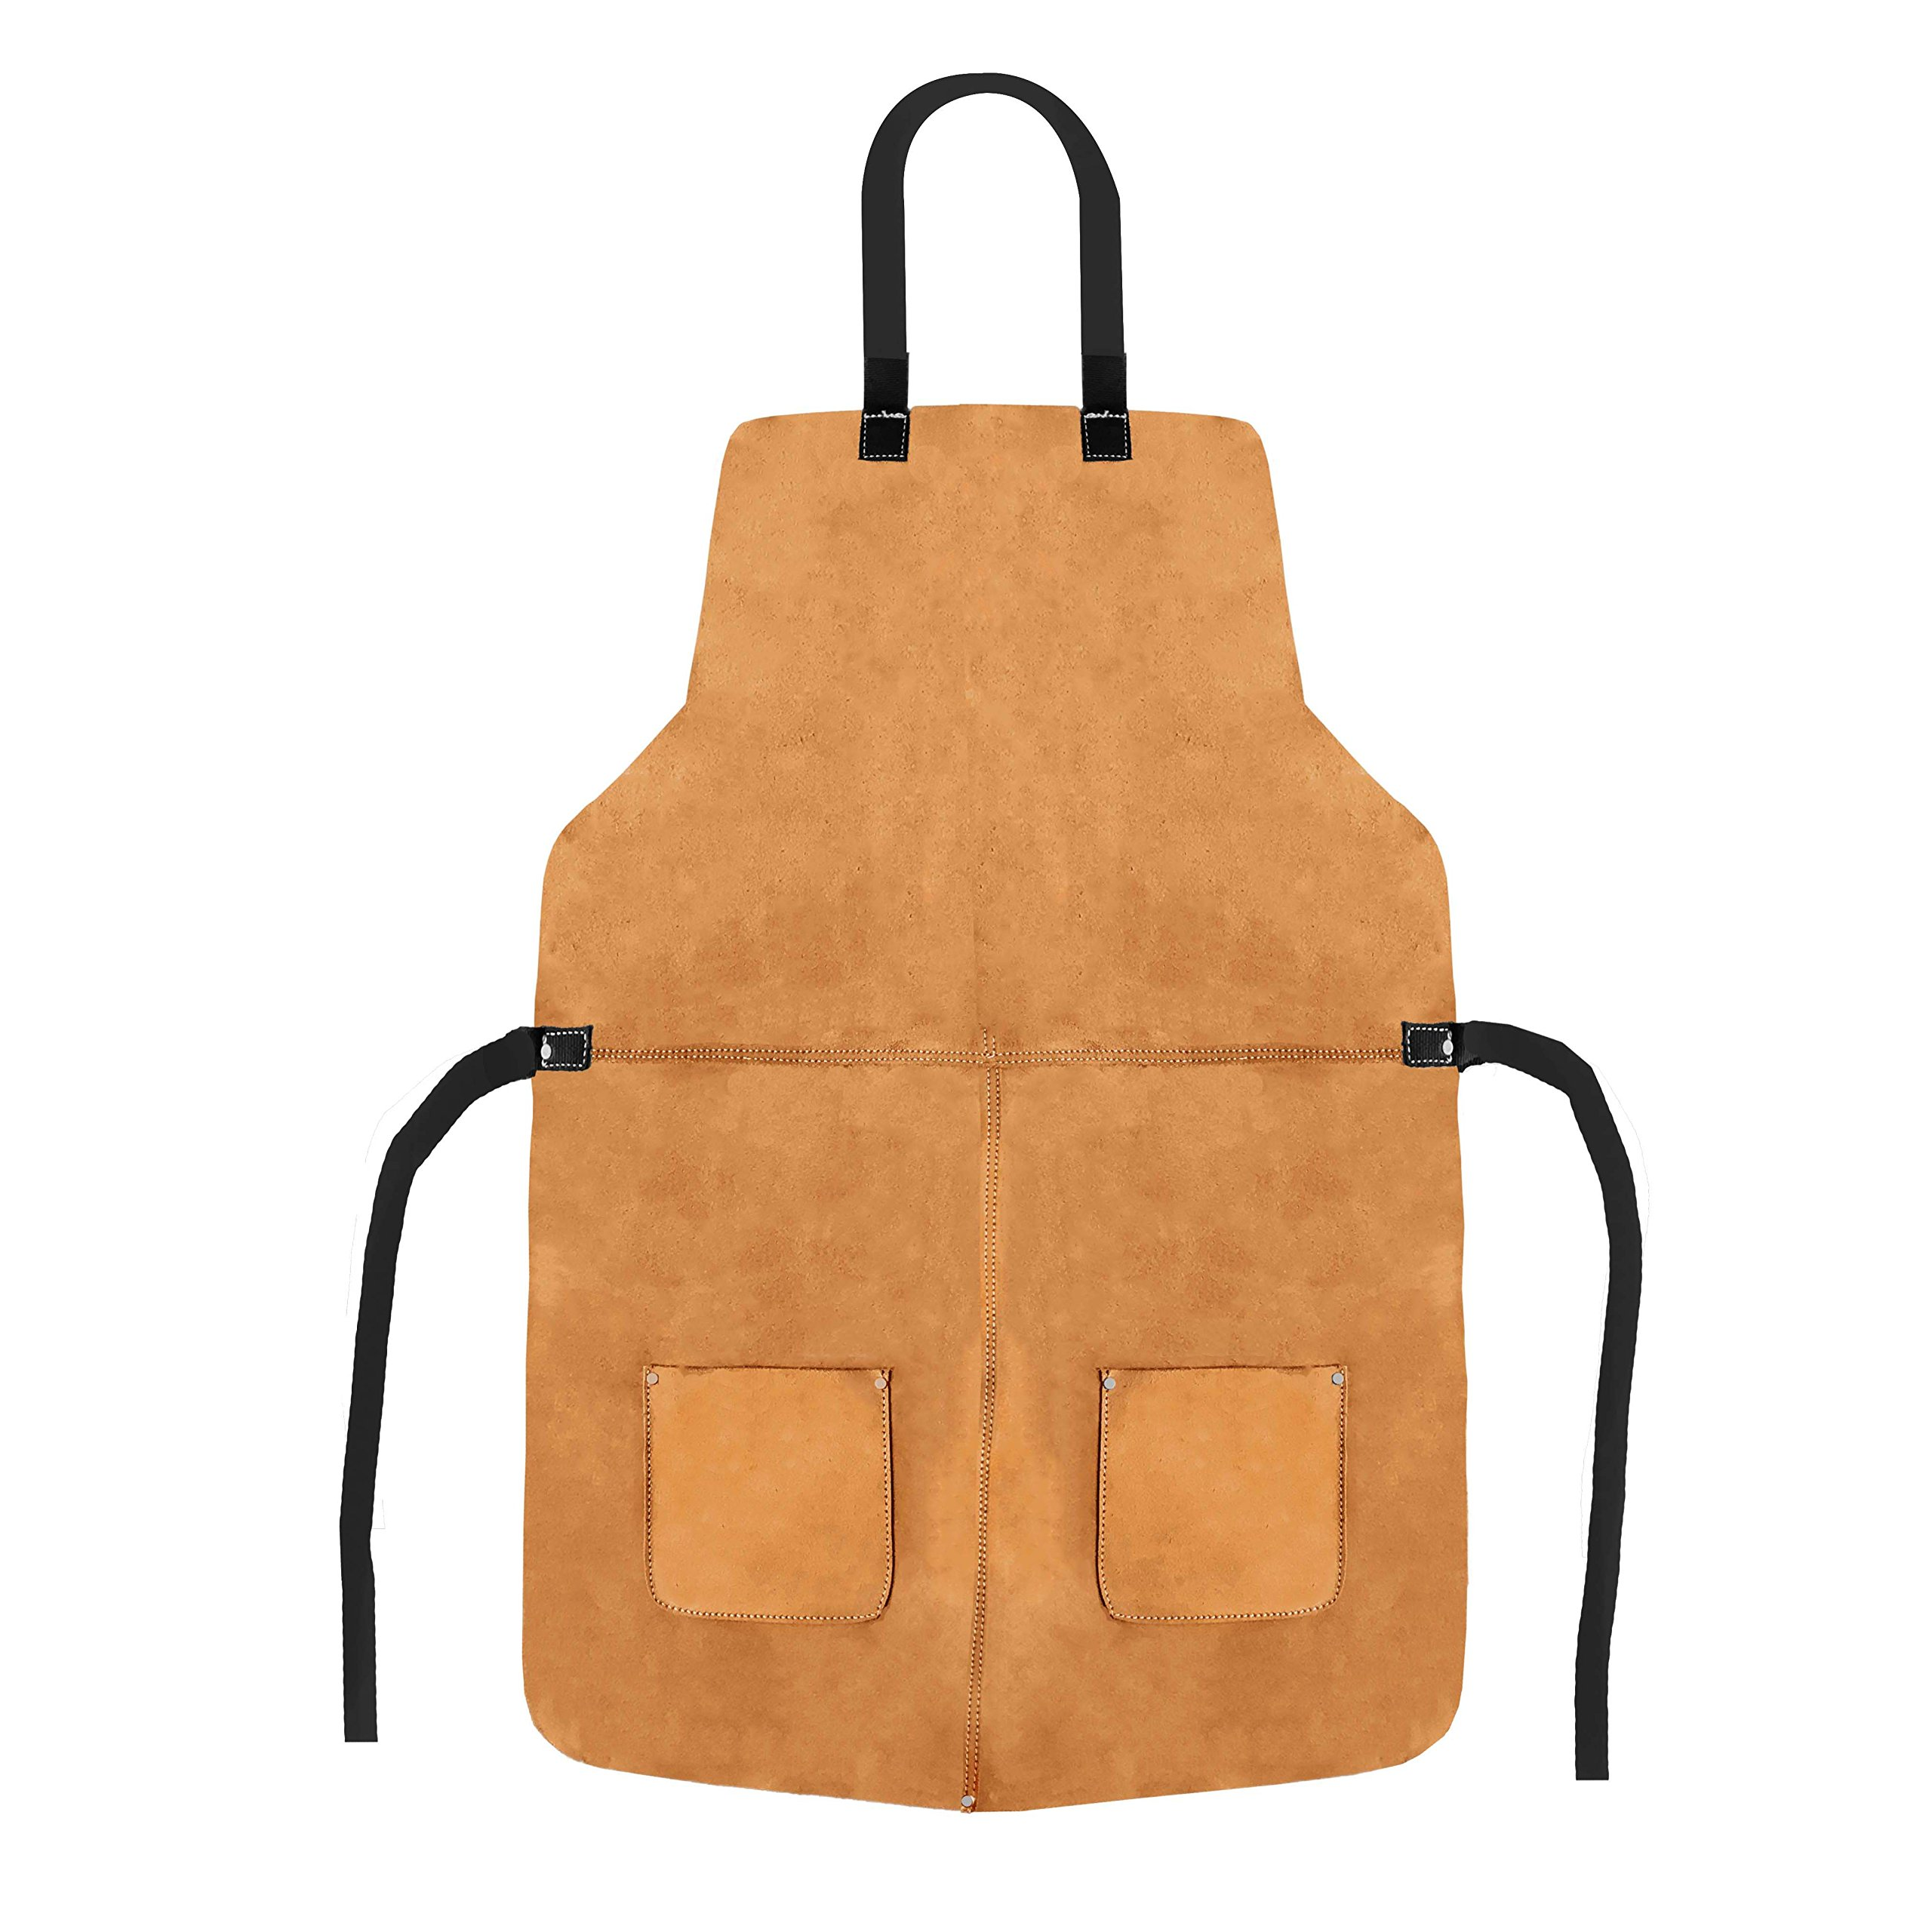 Big and Tall Split-Cowhide Leather Grinder's Shop Utility Apron With Pockets - Heat Resistant